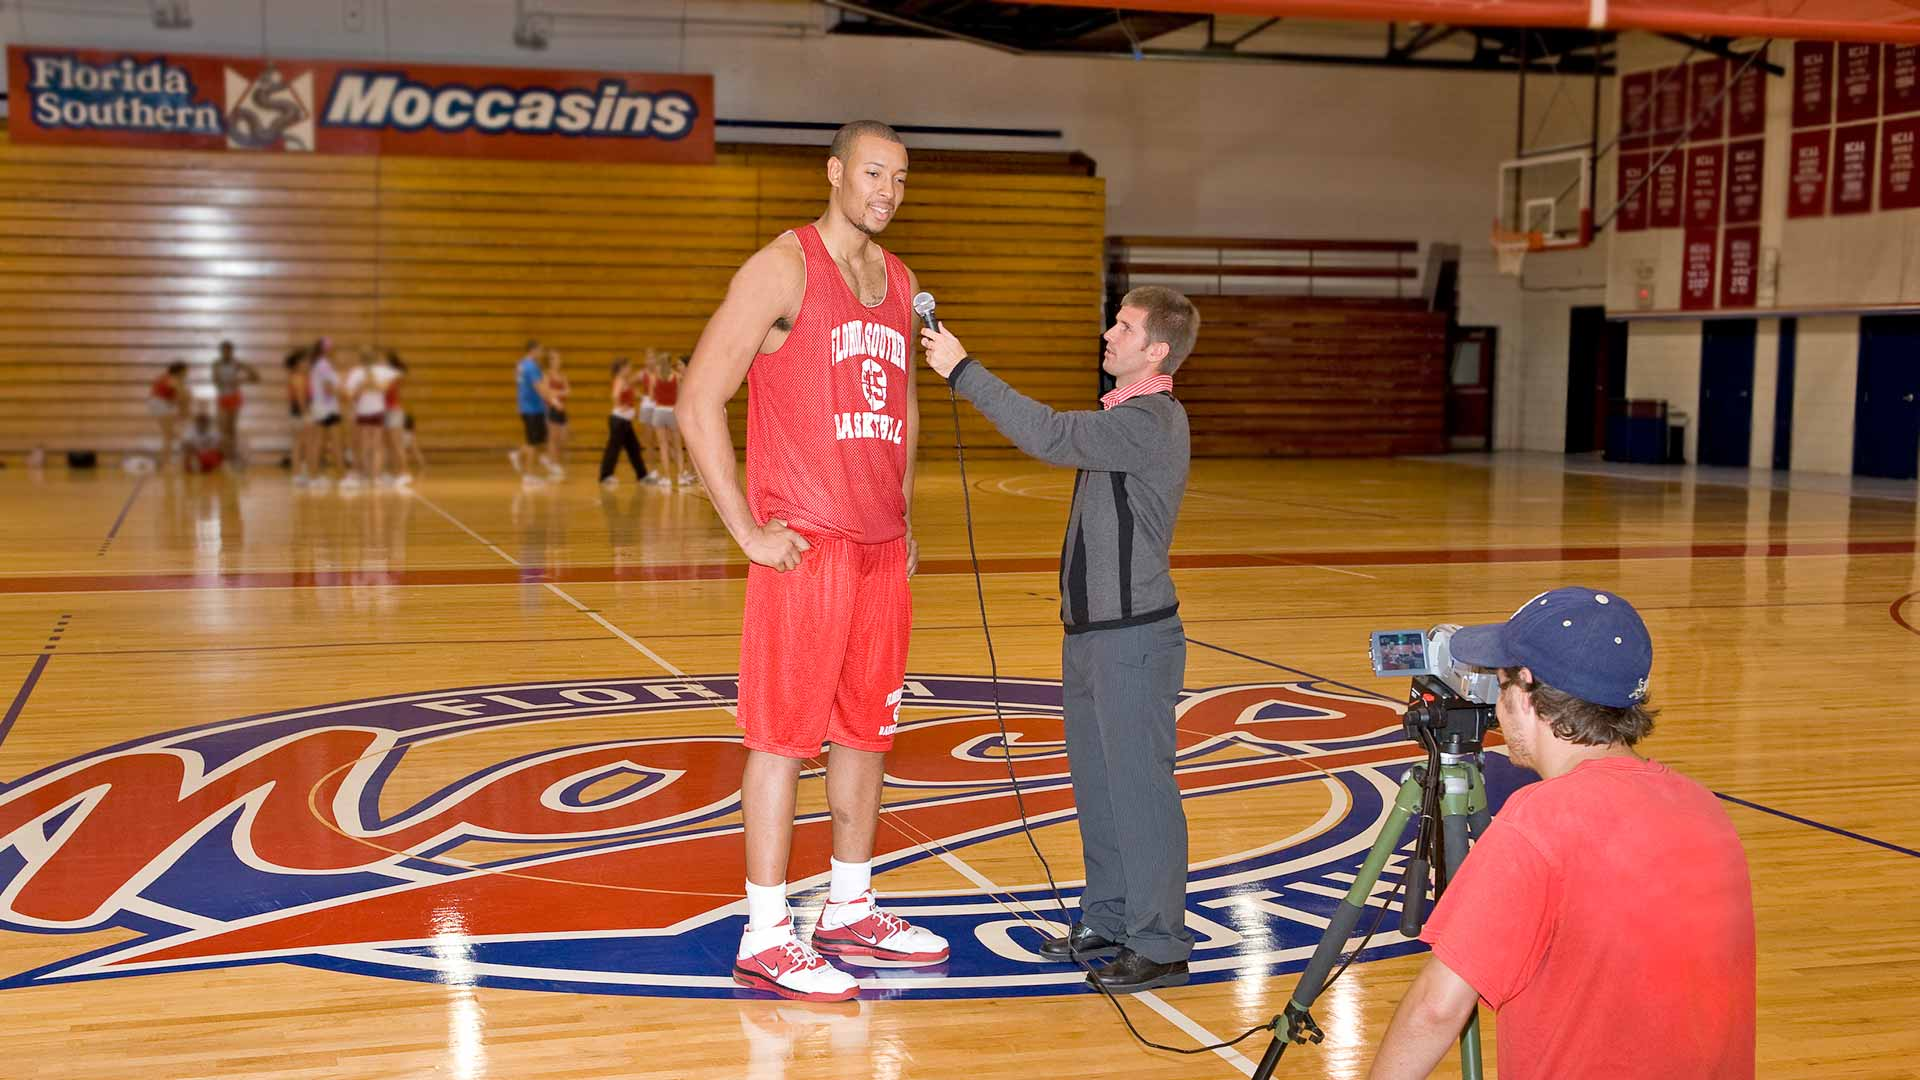 sports communication student interviewing a basketball player